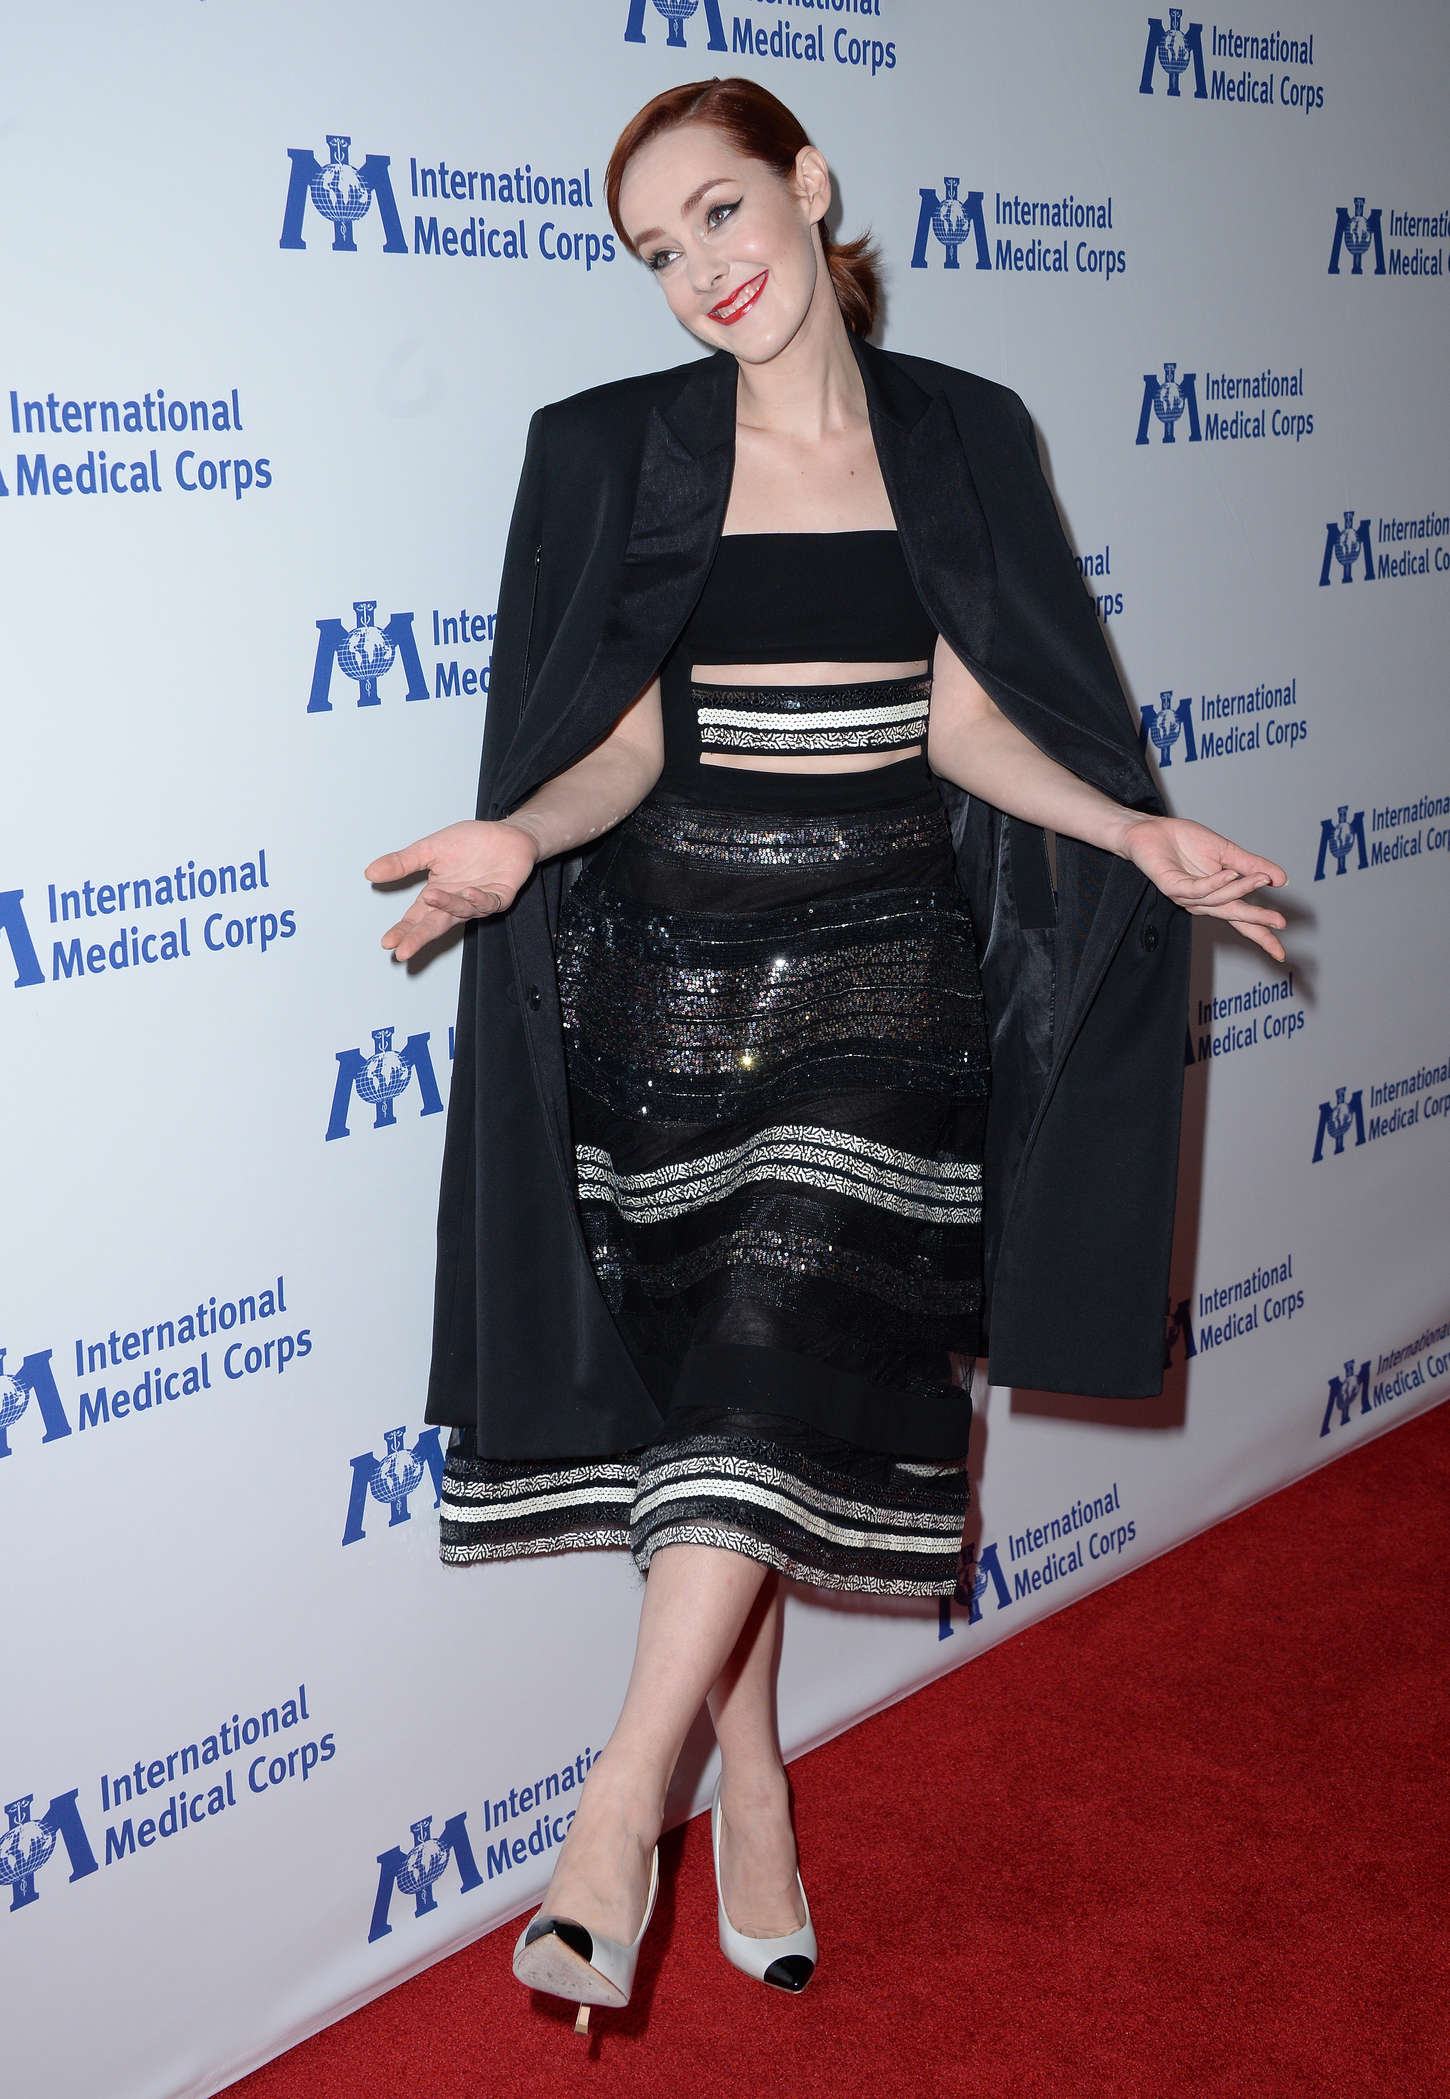 Jena Malone - International Medical Corps' Annual Awards Dinner in Beverly Hills